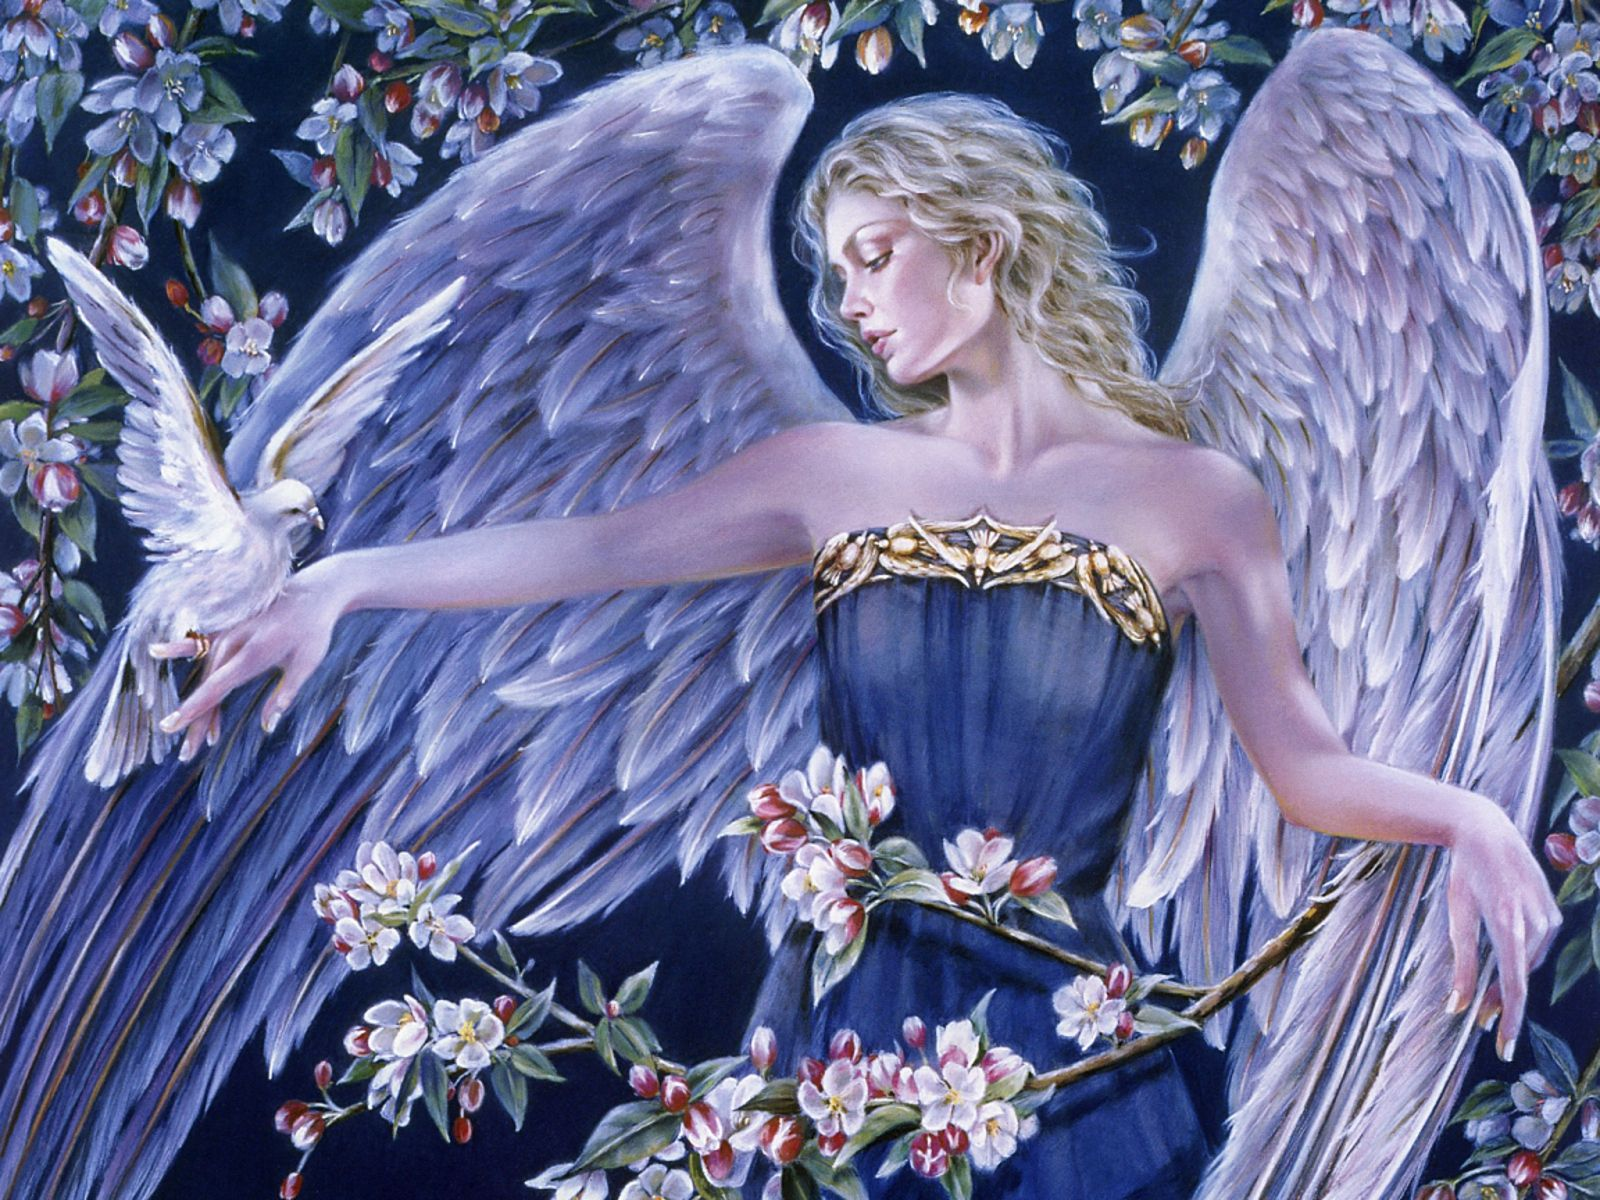 Pictures Of Angels And Flowers Flowers Angel Fantasy Angel Wallpaper Angel Images Angel Art